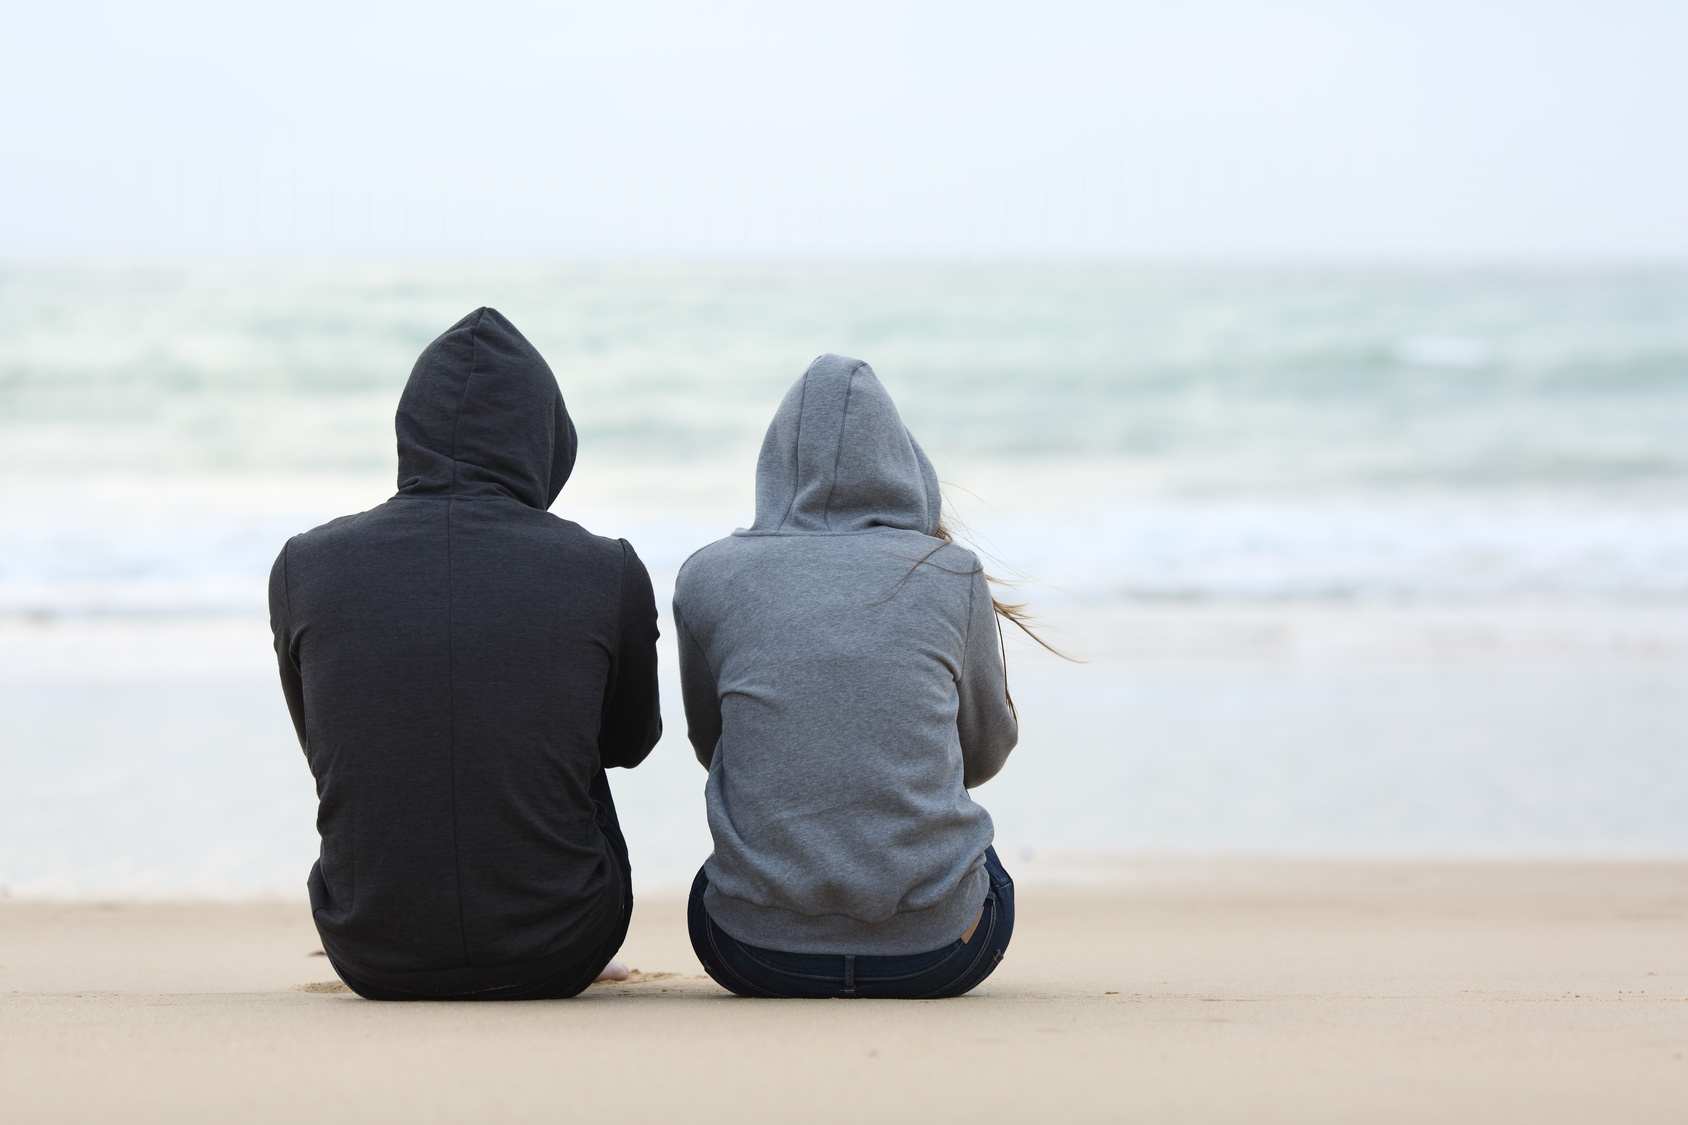 Two-People-Sitting-on-a-Beach